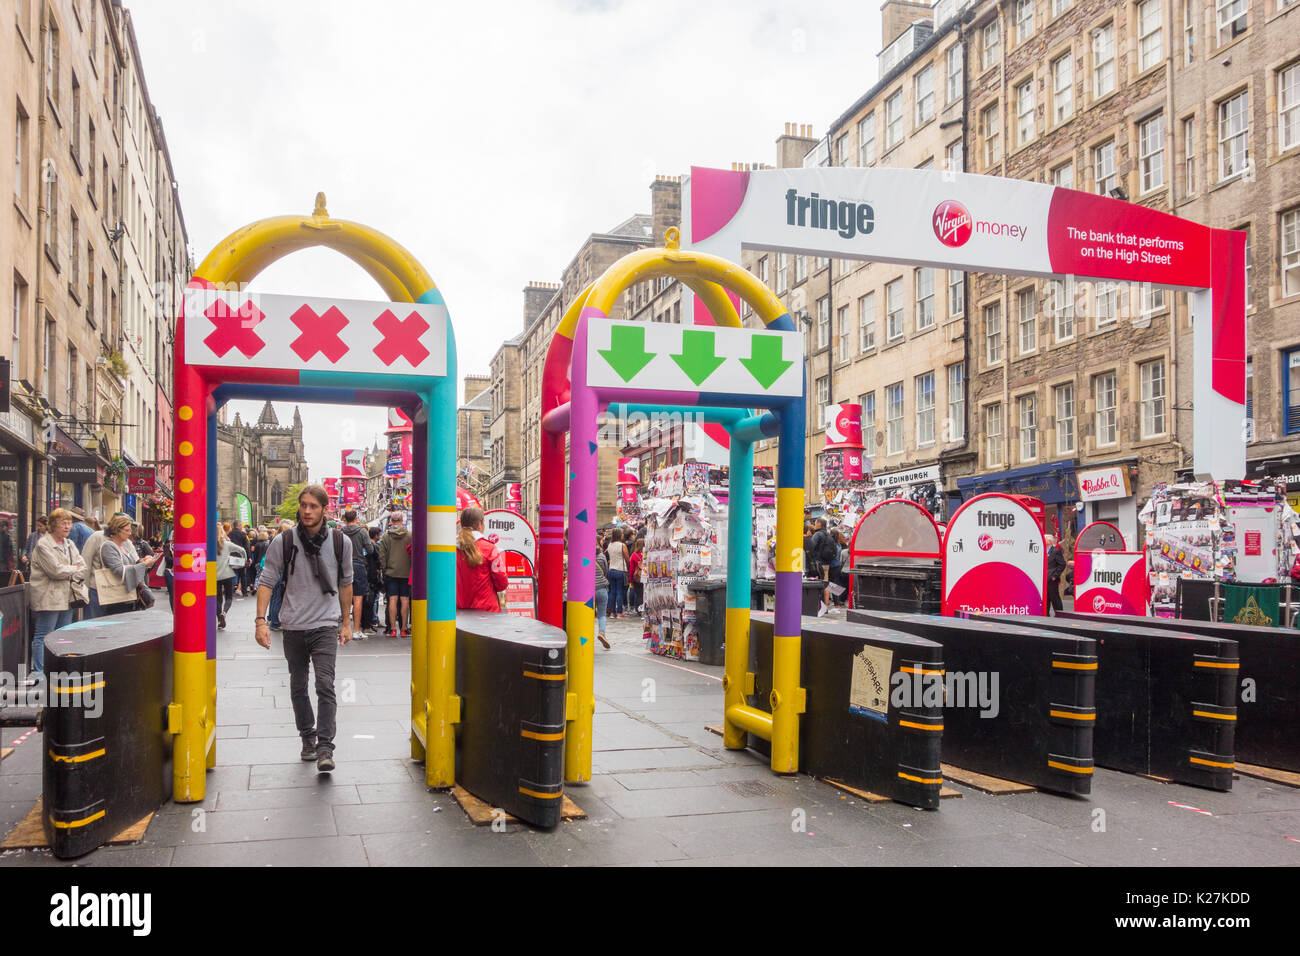 Anti-terrorism high security barriers at the Edinburgh Fringe Festival 2017 - Stock Image